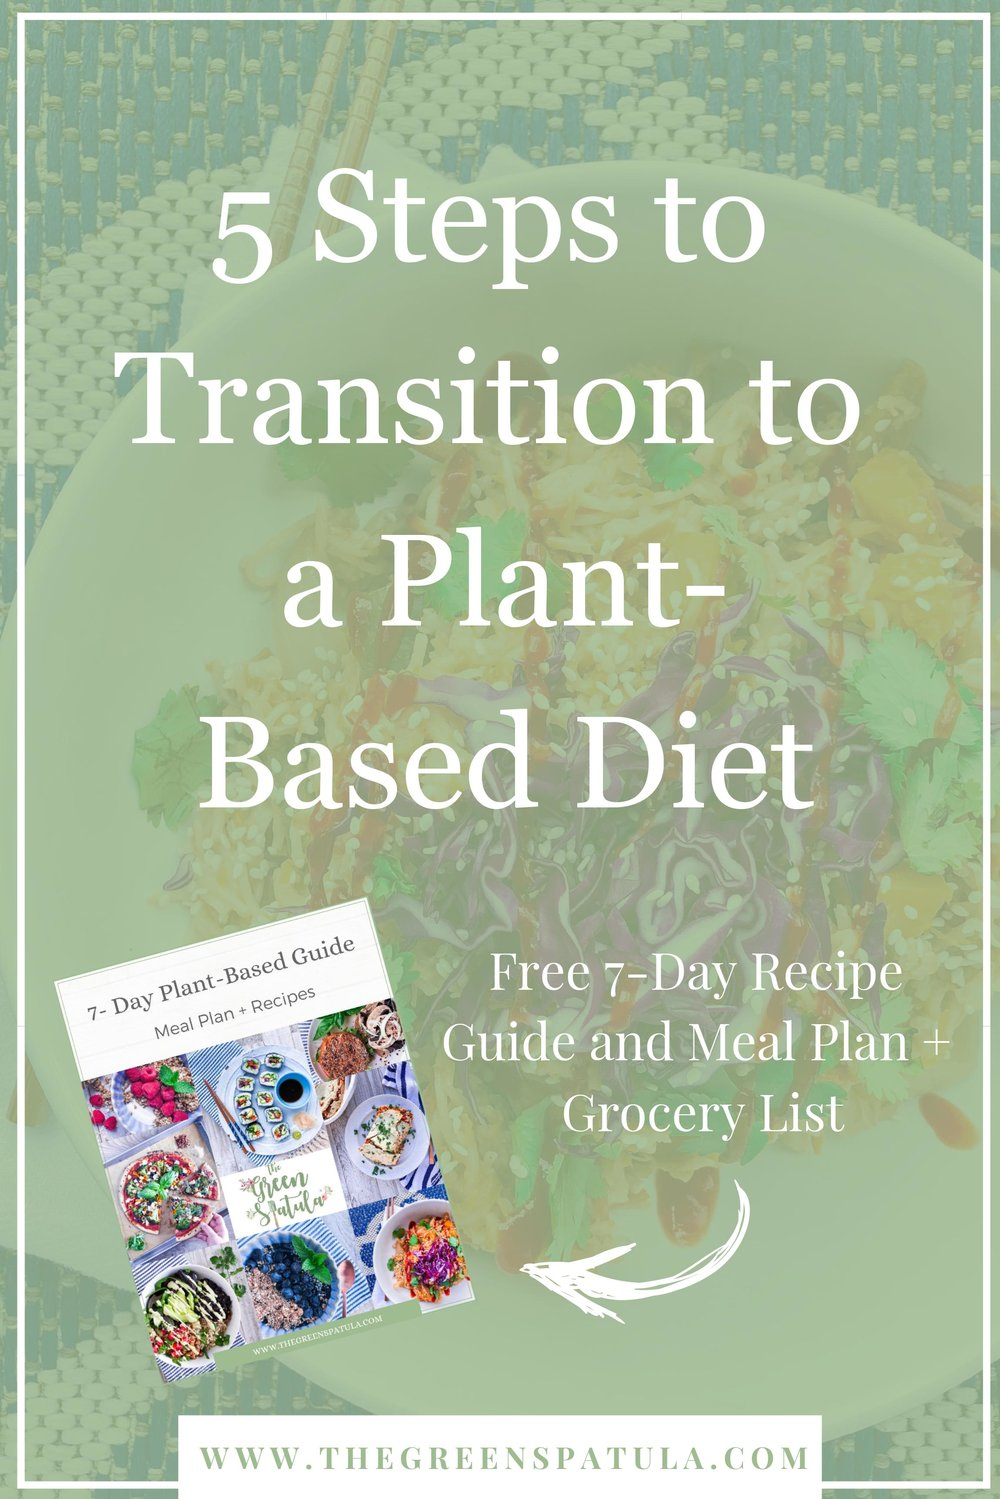 5 steps to transition to a plant-based diet - I'm thrilled to share these five tips so you can finally reach your weight loss and wellness goals without feeling restricted, deprived, or (worst of all) hungry. Make sure you download the FREE 7-Day Meal Plan and grocery list to help get you started. #plantbased #vegan #healthyeating #freedownload #cleaneating